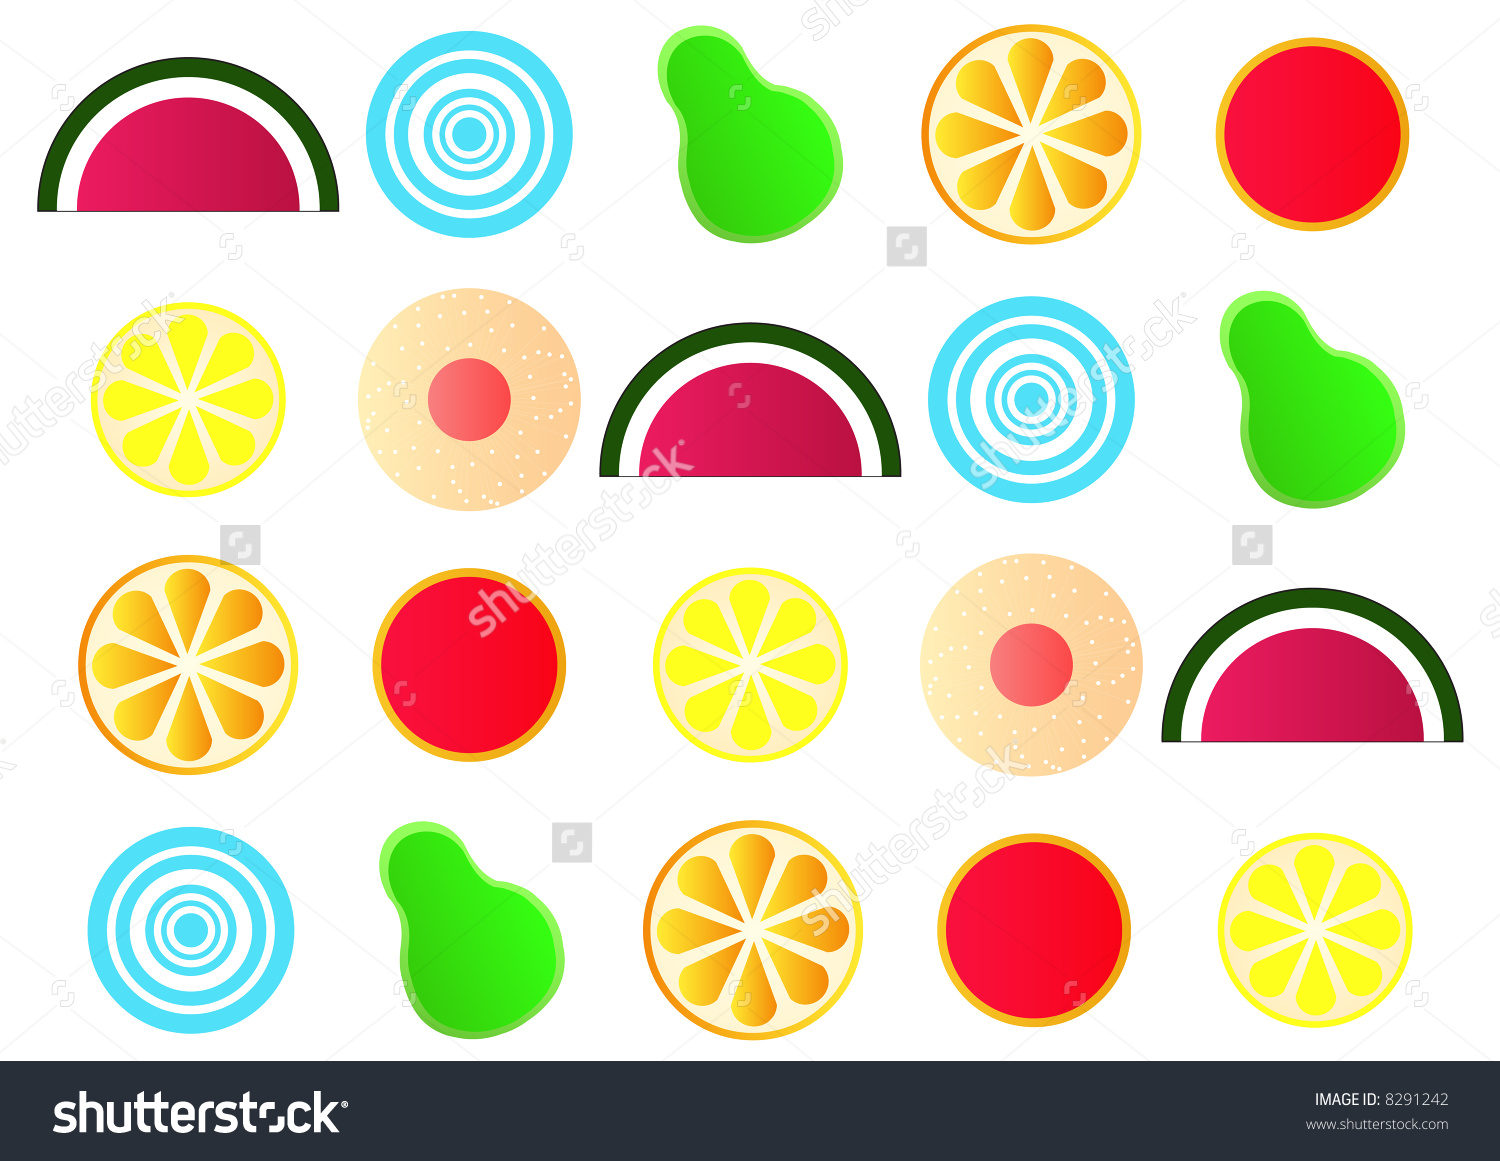 Stylized Japanese Fruit Jelly Gum Shapes Stock Photo 8291242.